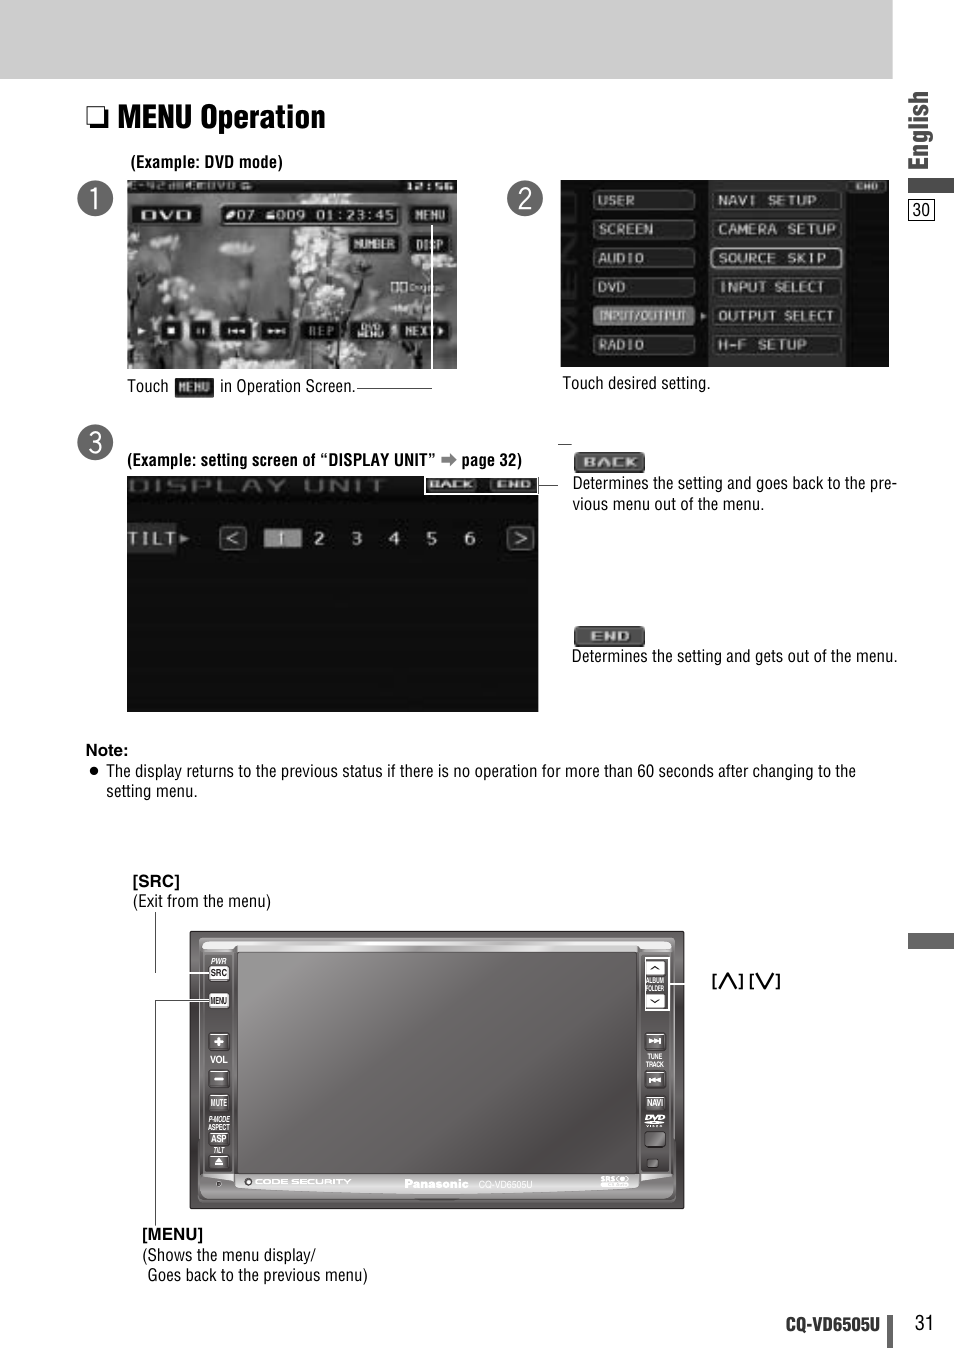 menu operation, english panasonic cq vd6505u user manual page 31 Car Stereo Color Wiring Diagram menu operation, english panasonic cq vd6505u user manual page 31 52